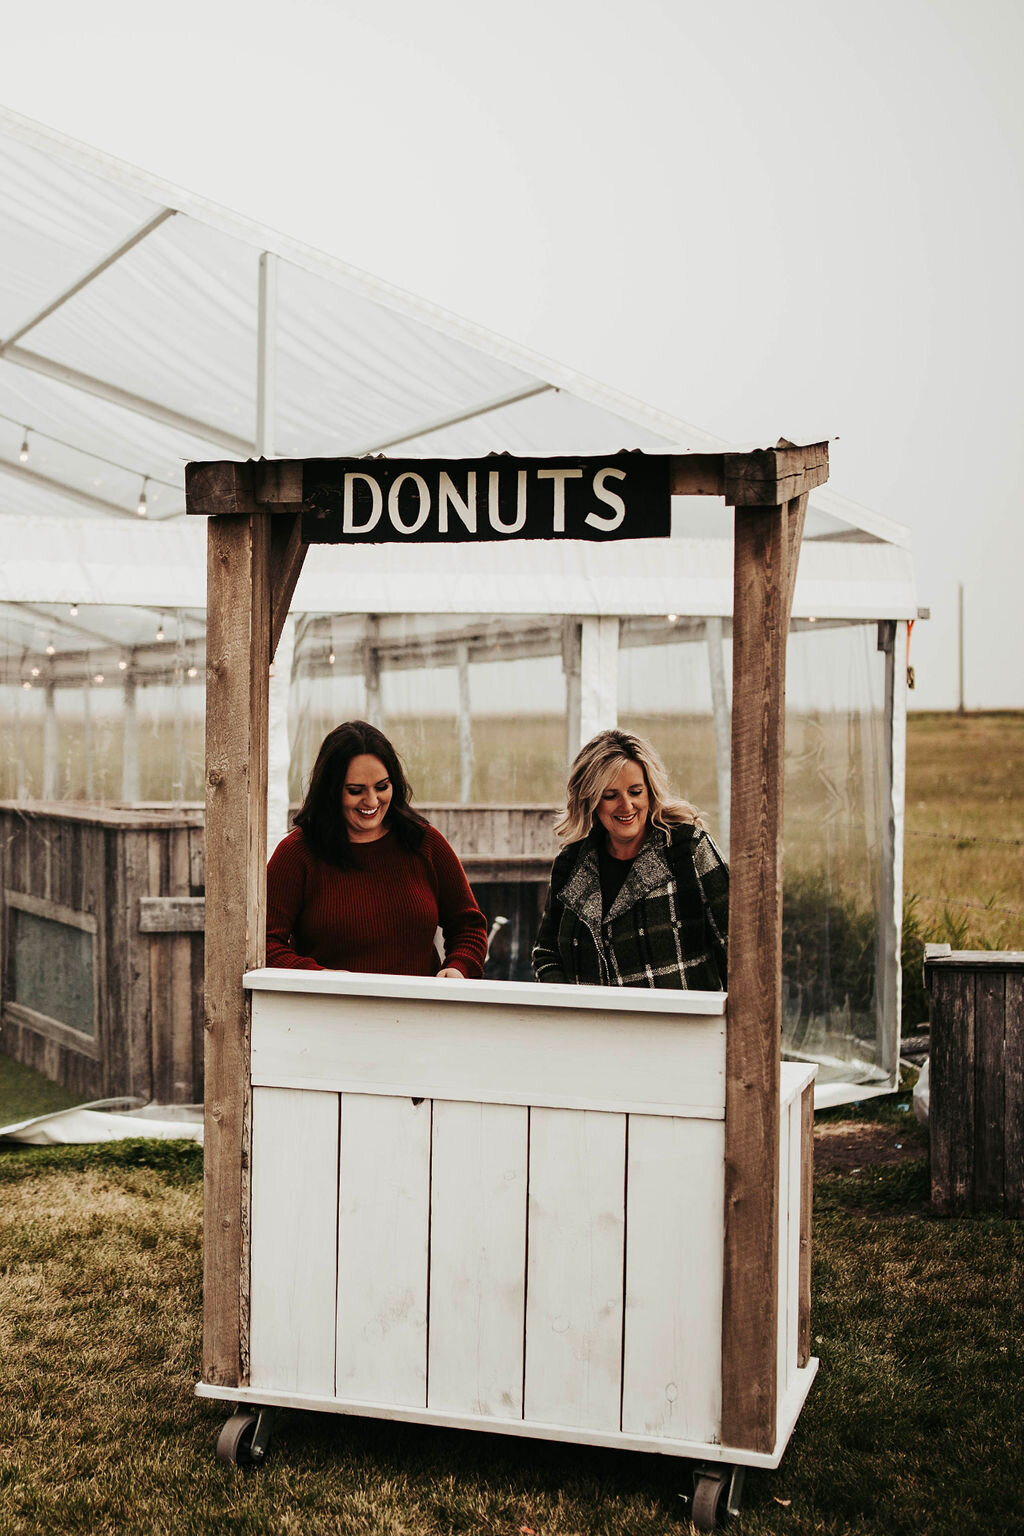 women standing at a donut stand